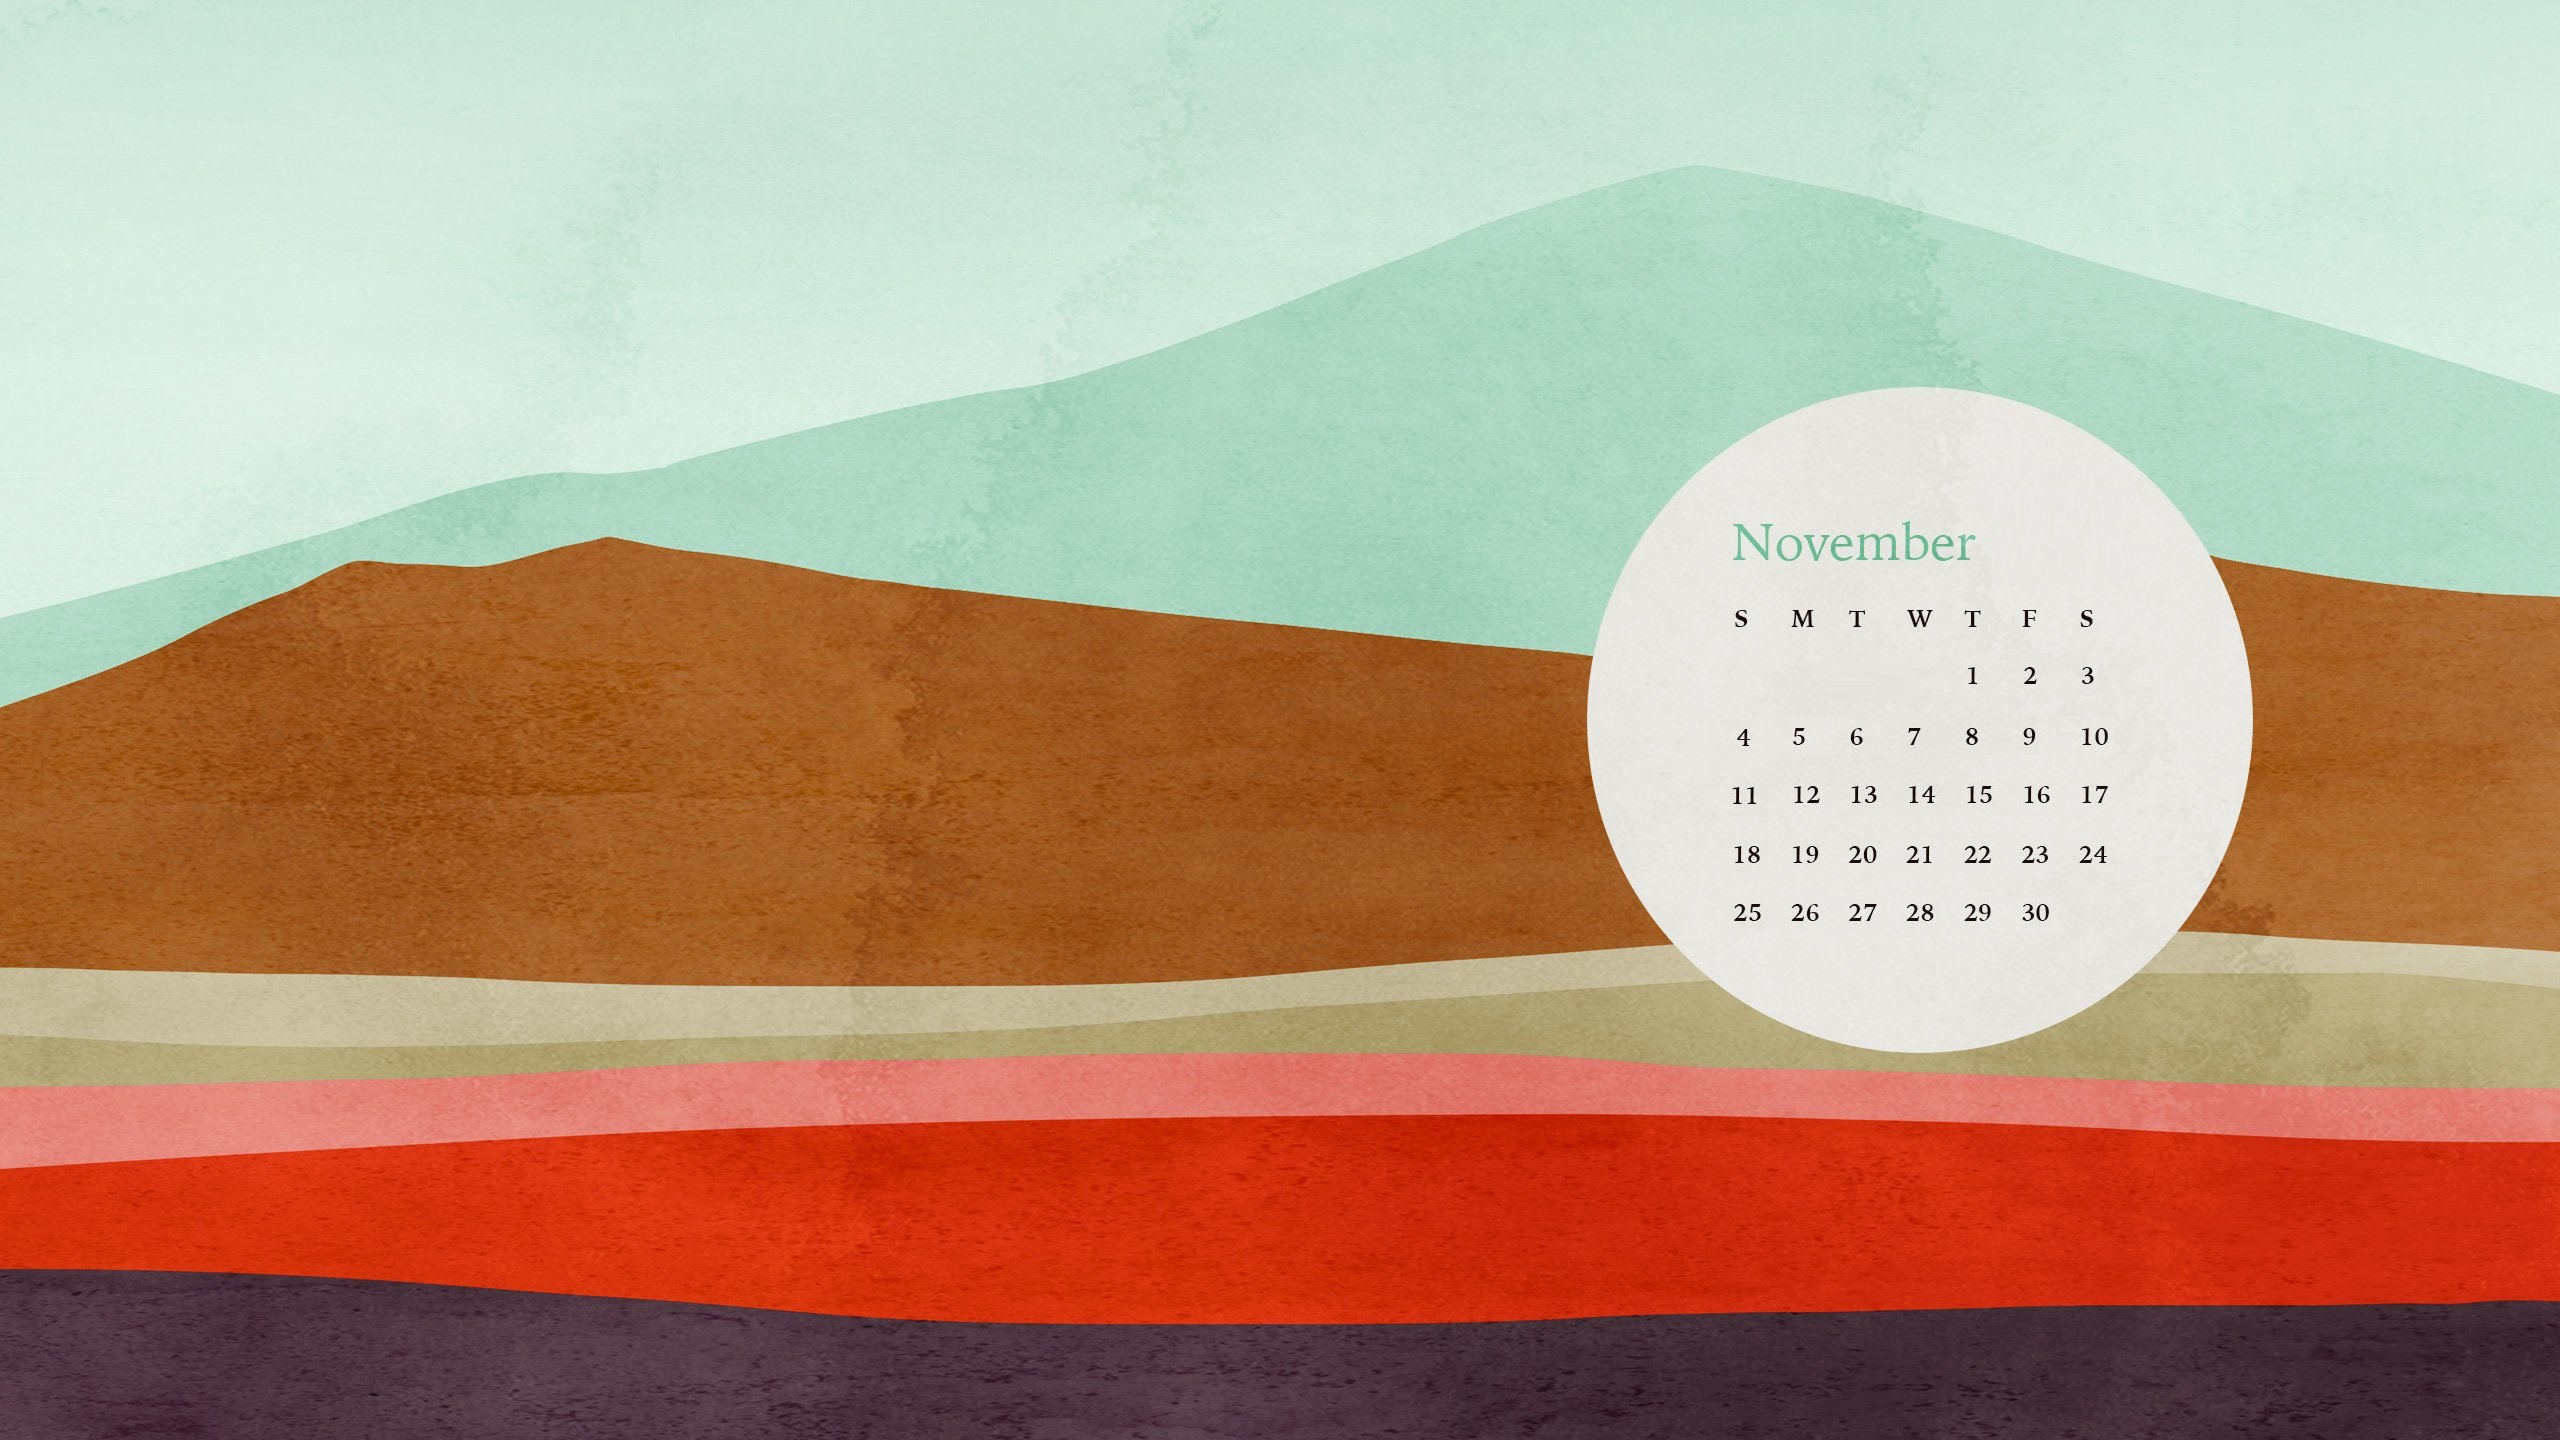 November 2018 Desktop Calendar Designs